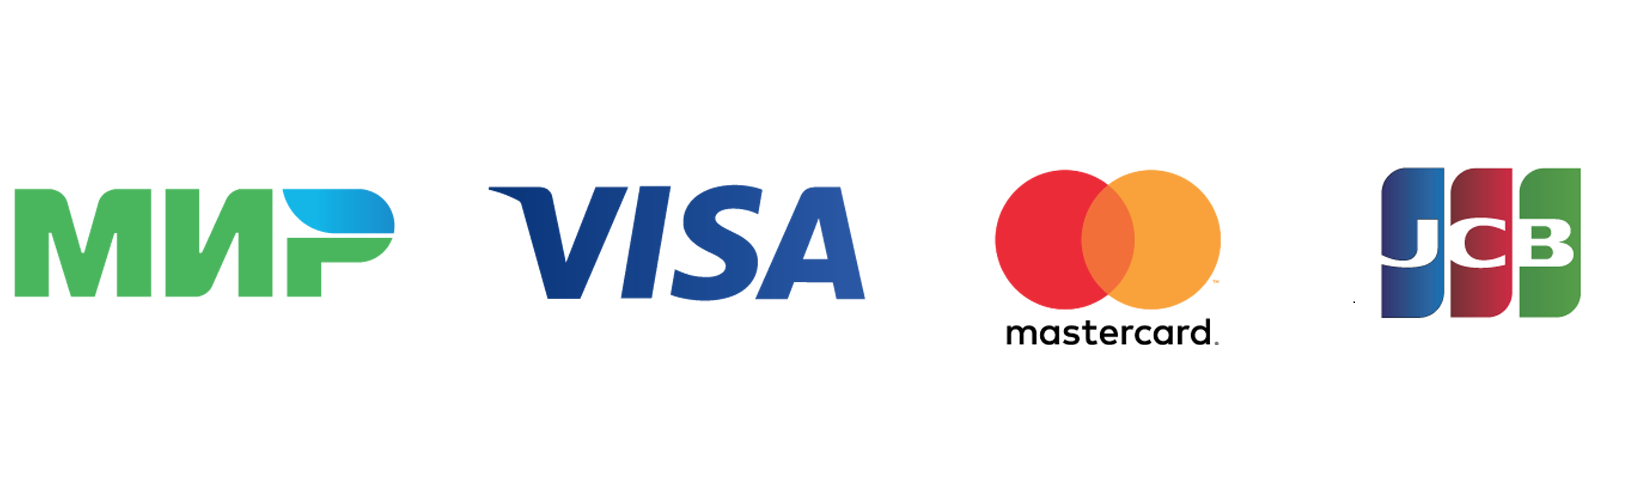 МИР VISA International Mastercard Worldwide JCB